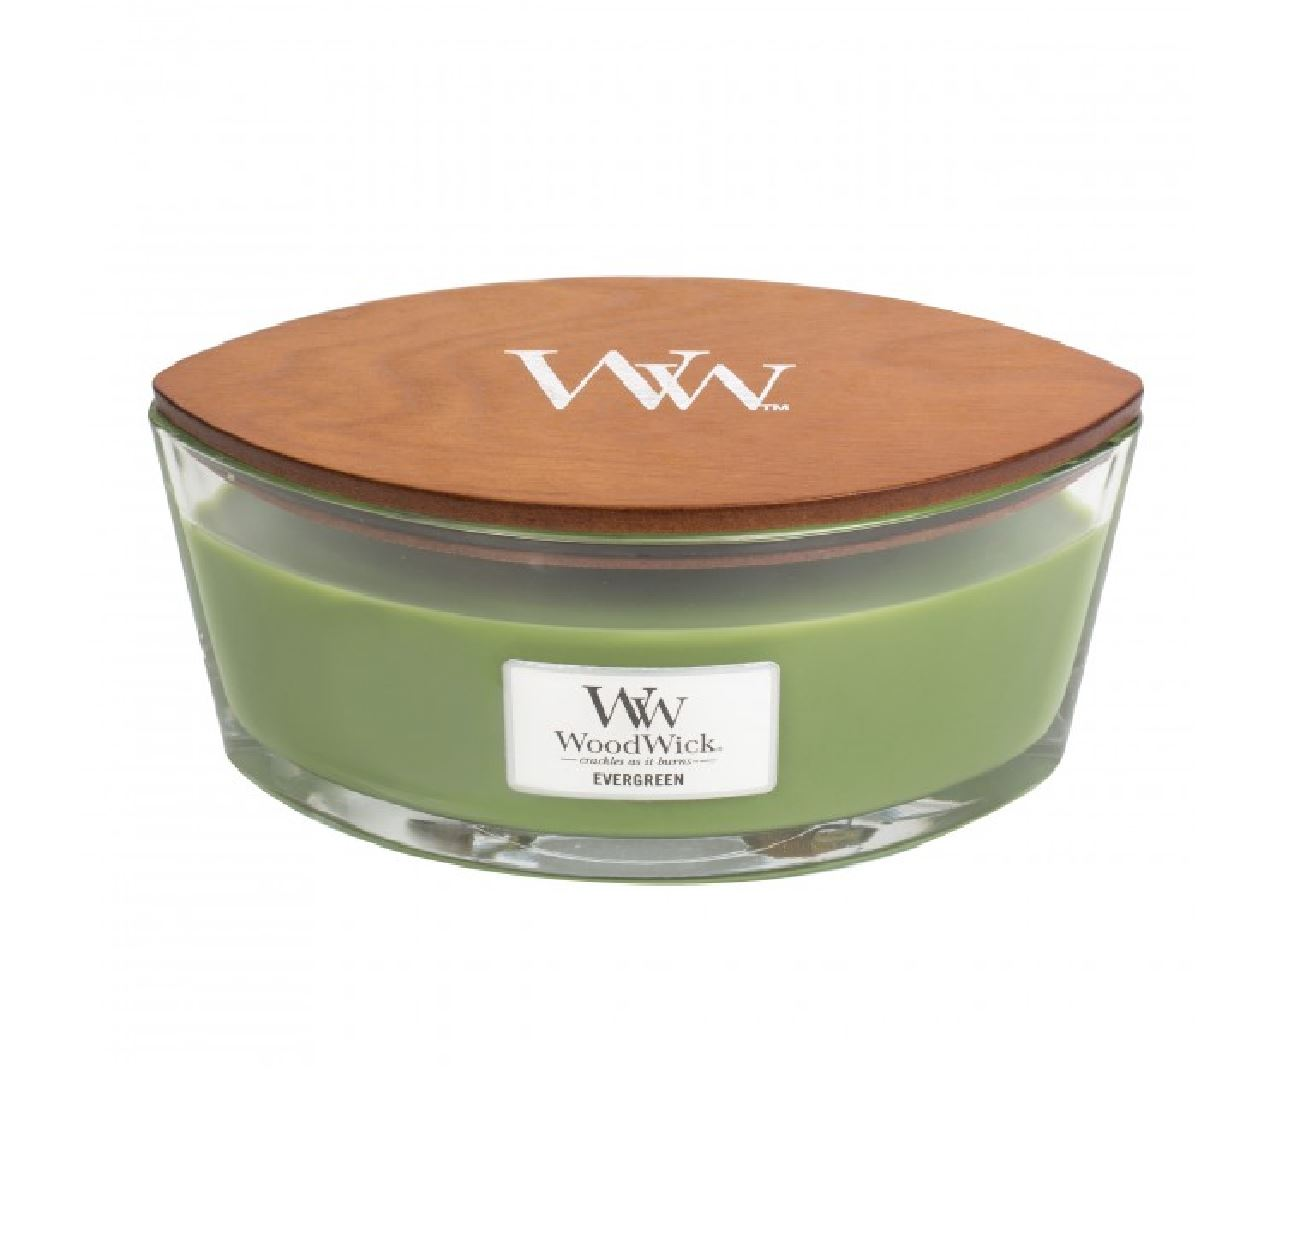 Woodwick-Hearthwick-Christmas-Candle-Jar-Elipse-16oz-Scented-Fragrance-Home-Gift